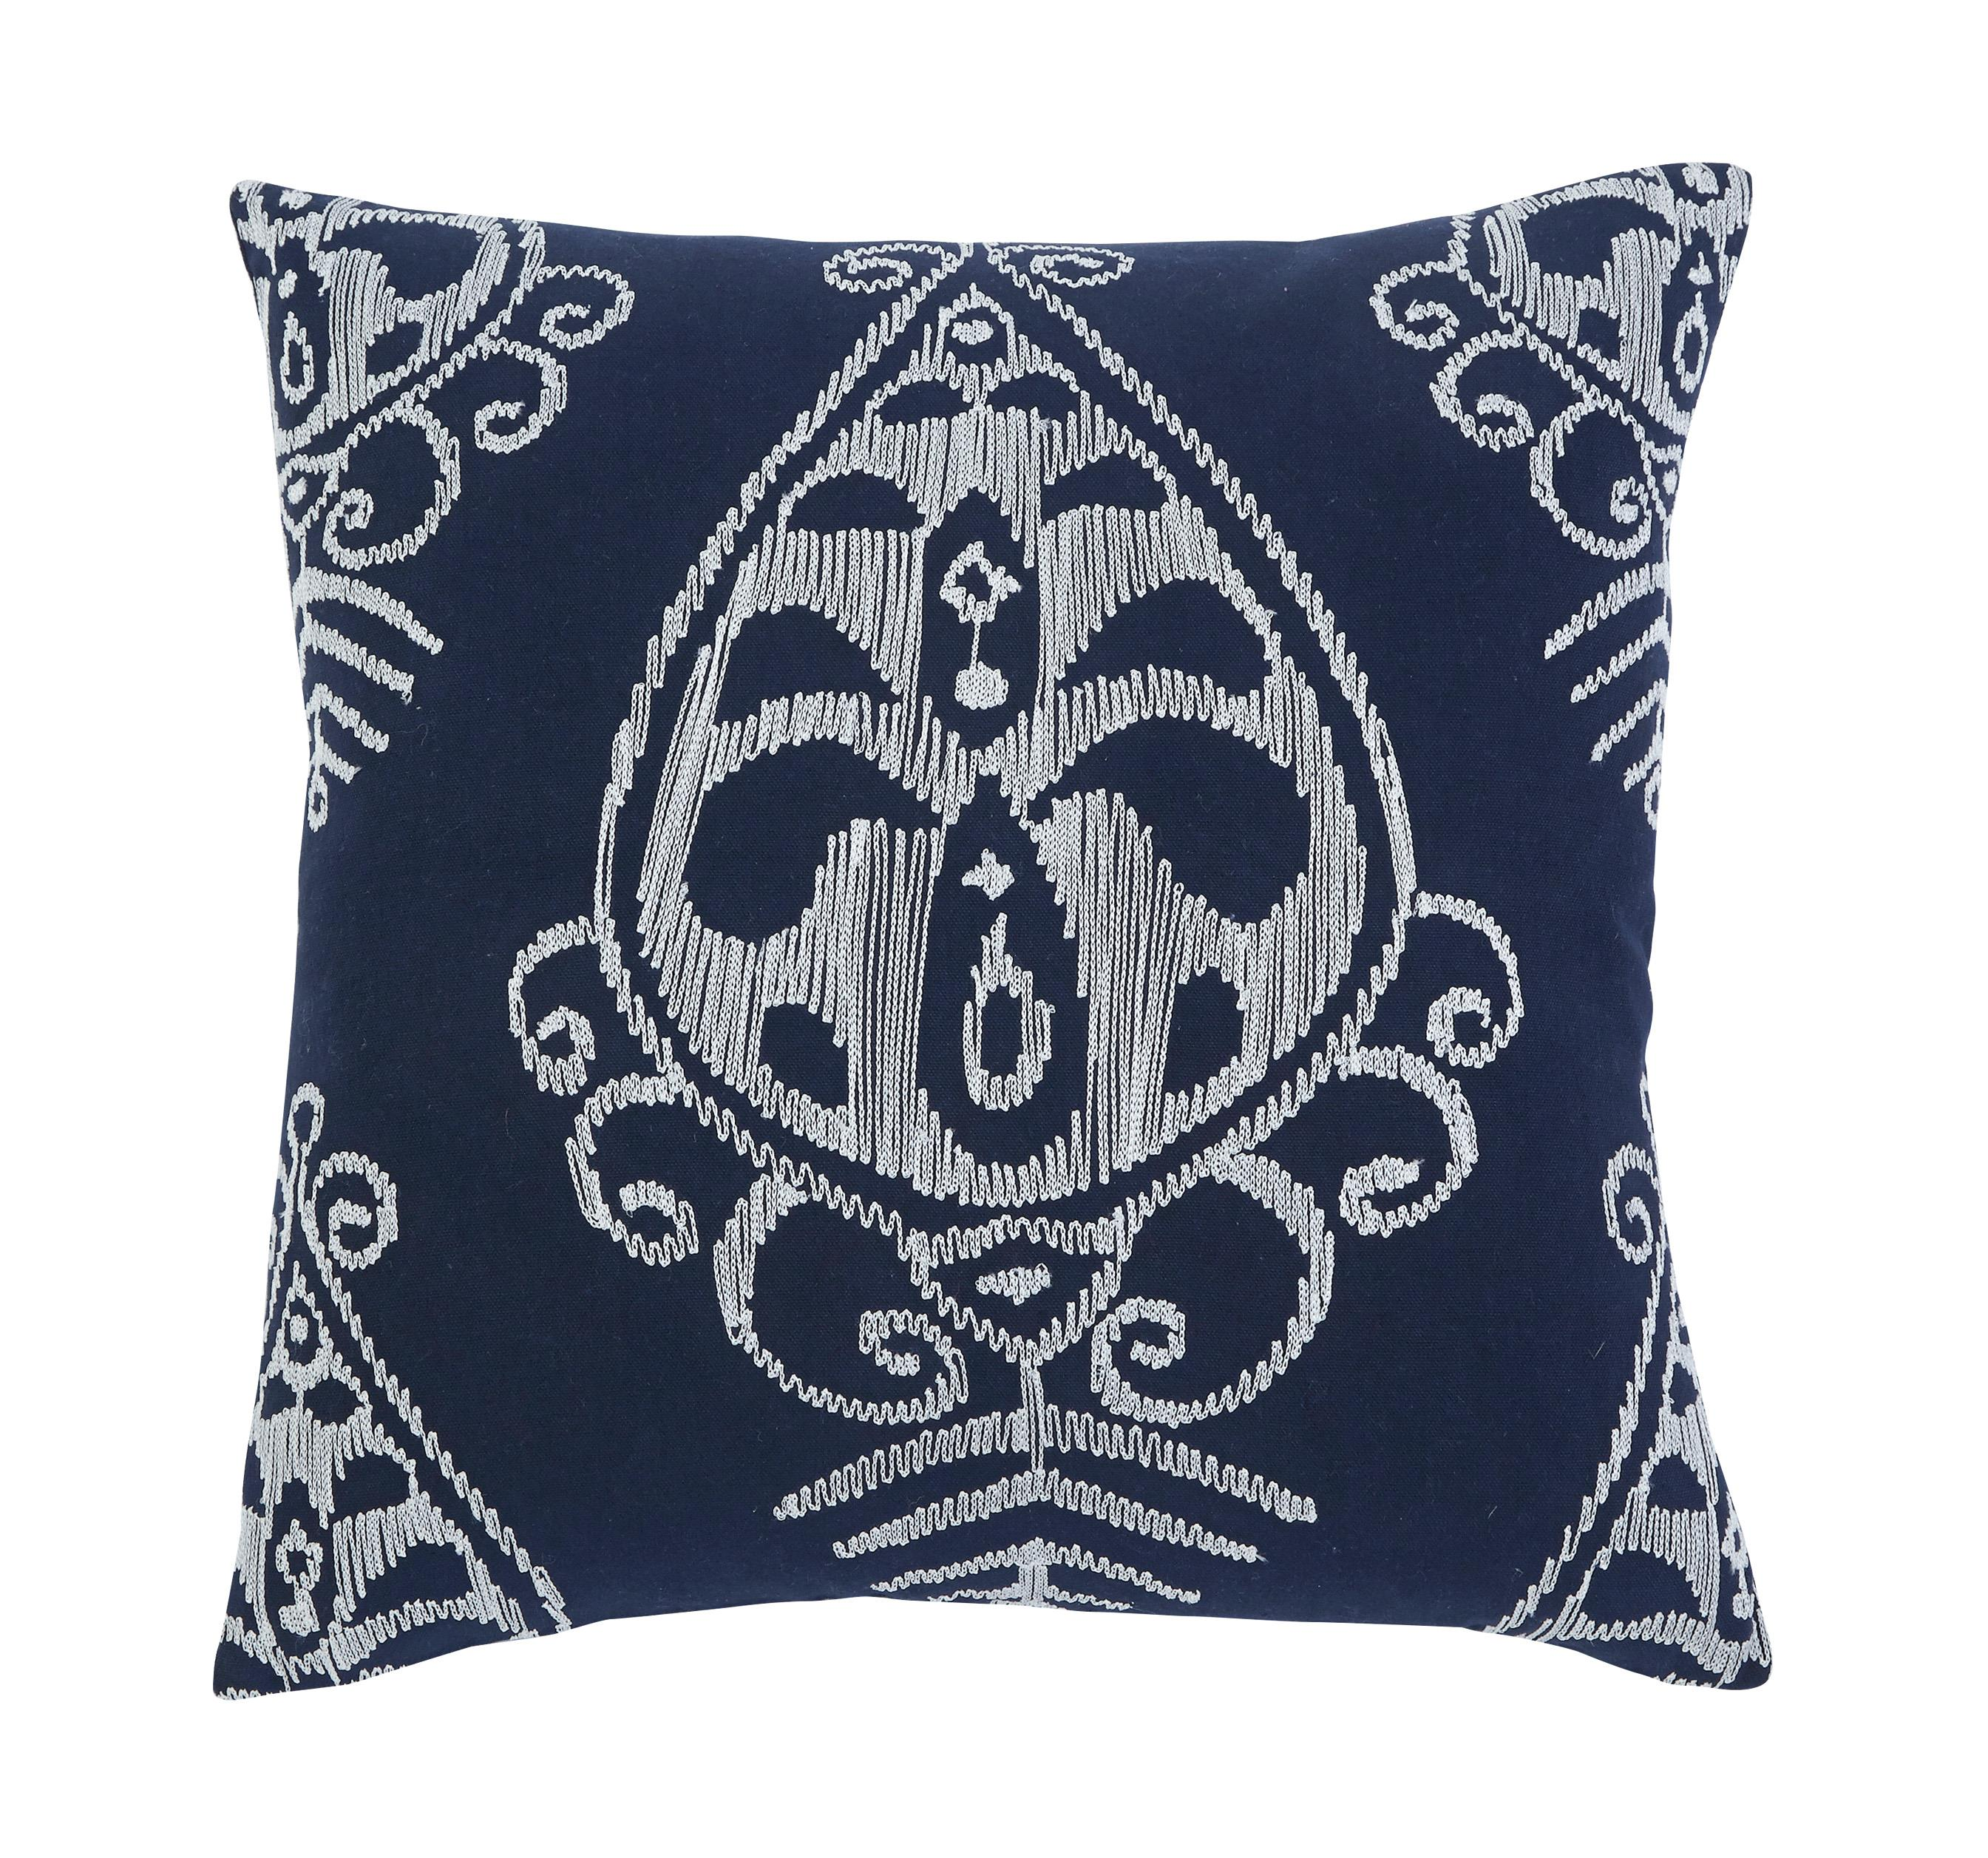 Signature Design by Ashley Pillows Embroidered - Navy Pillow Cover - Item Number: A1000291P